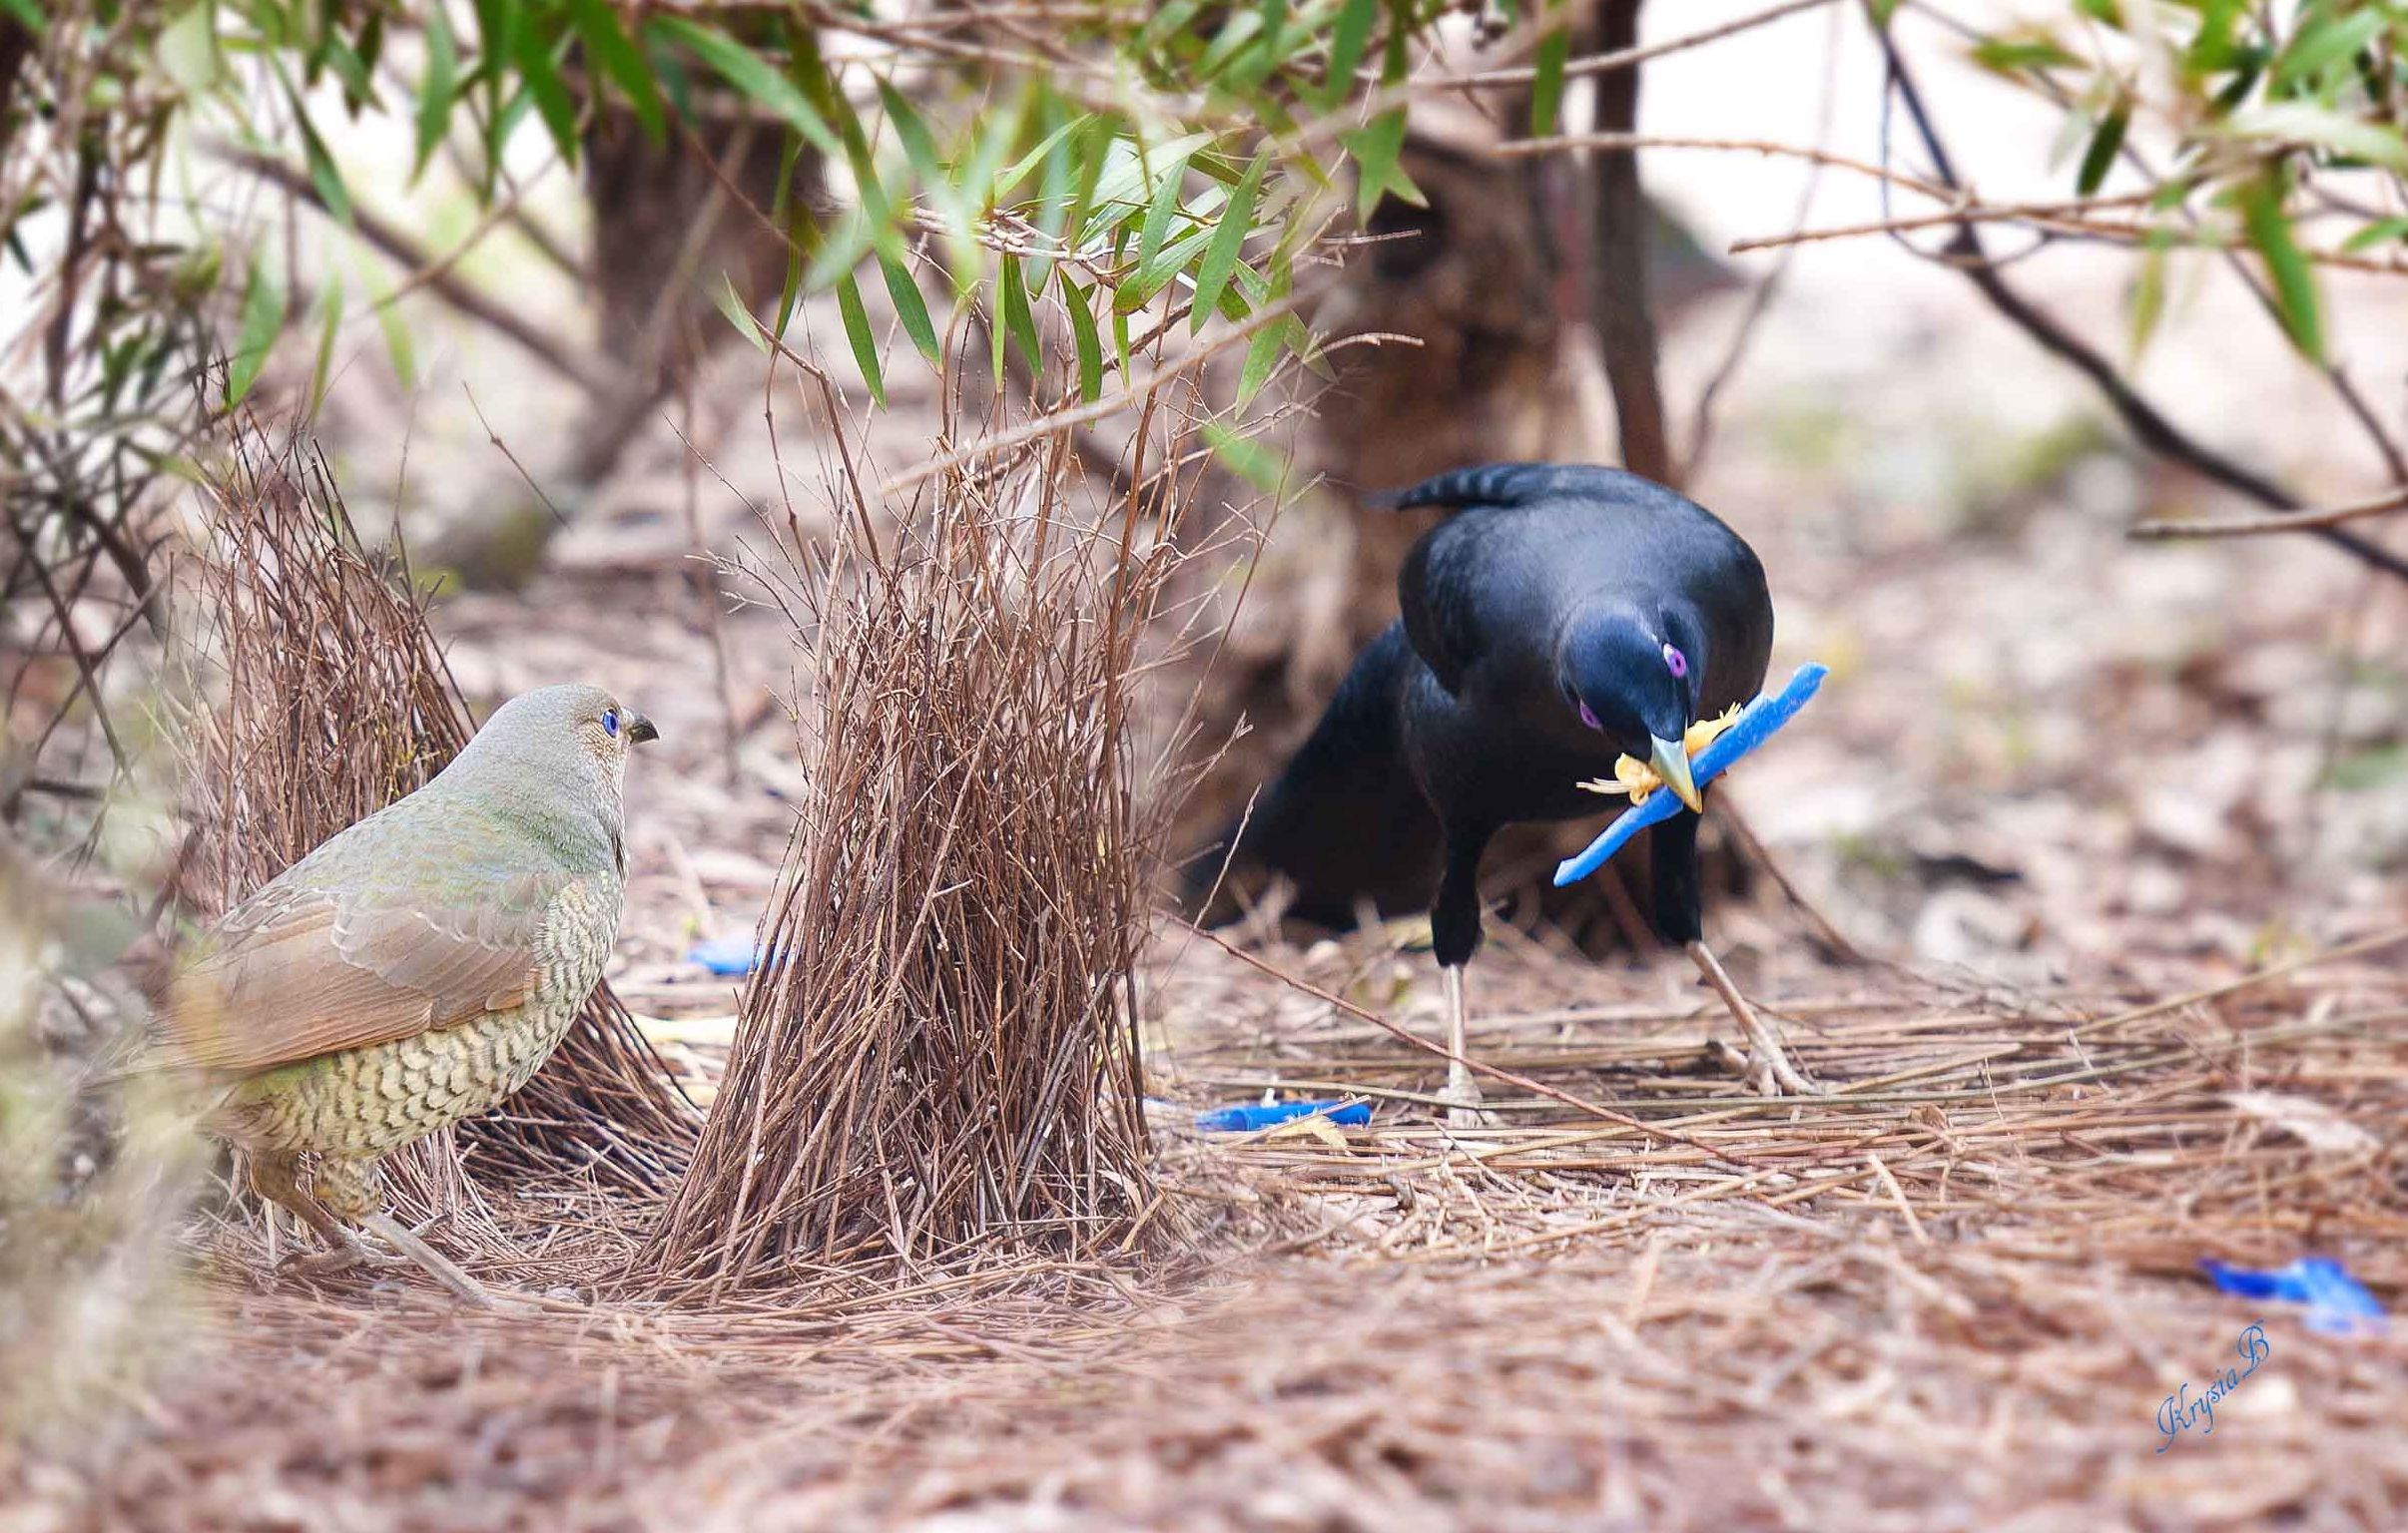 Two birds eating blue worms on the forest floor